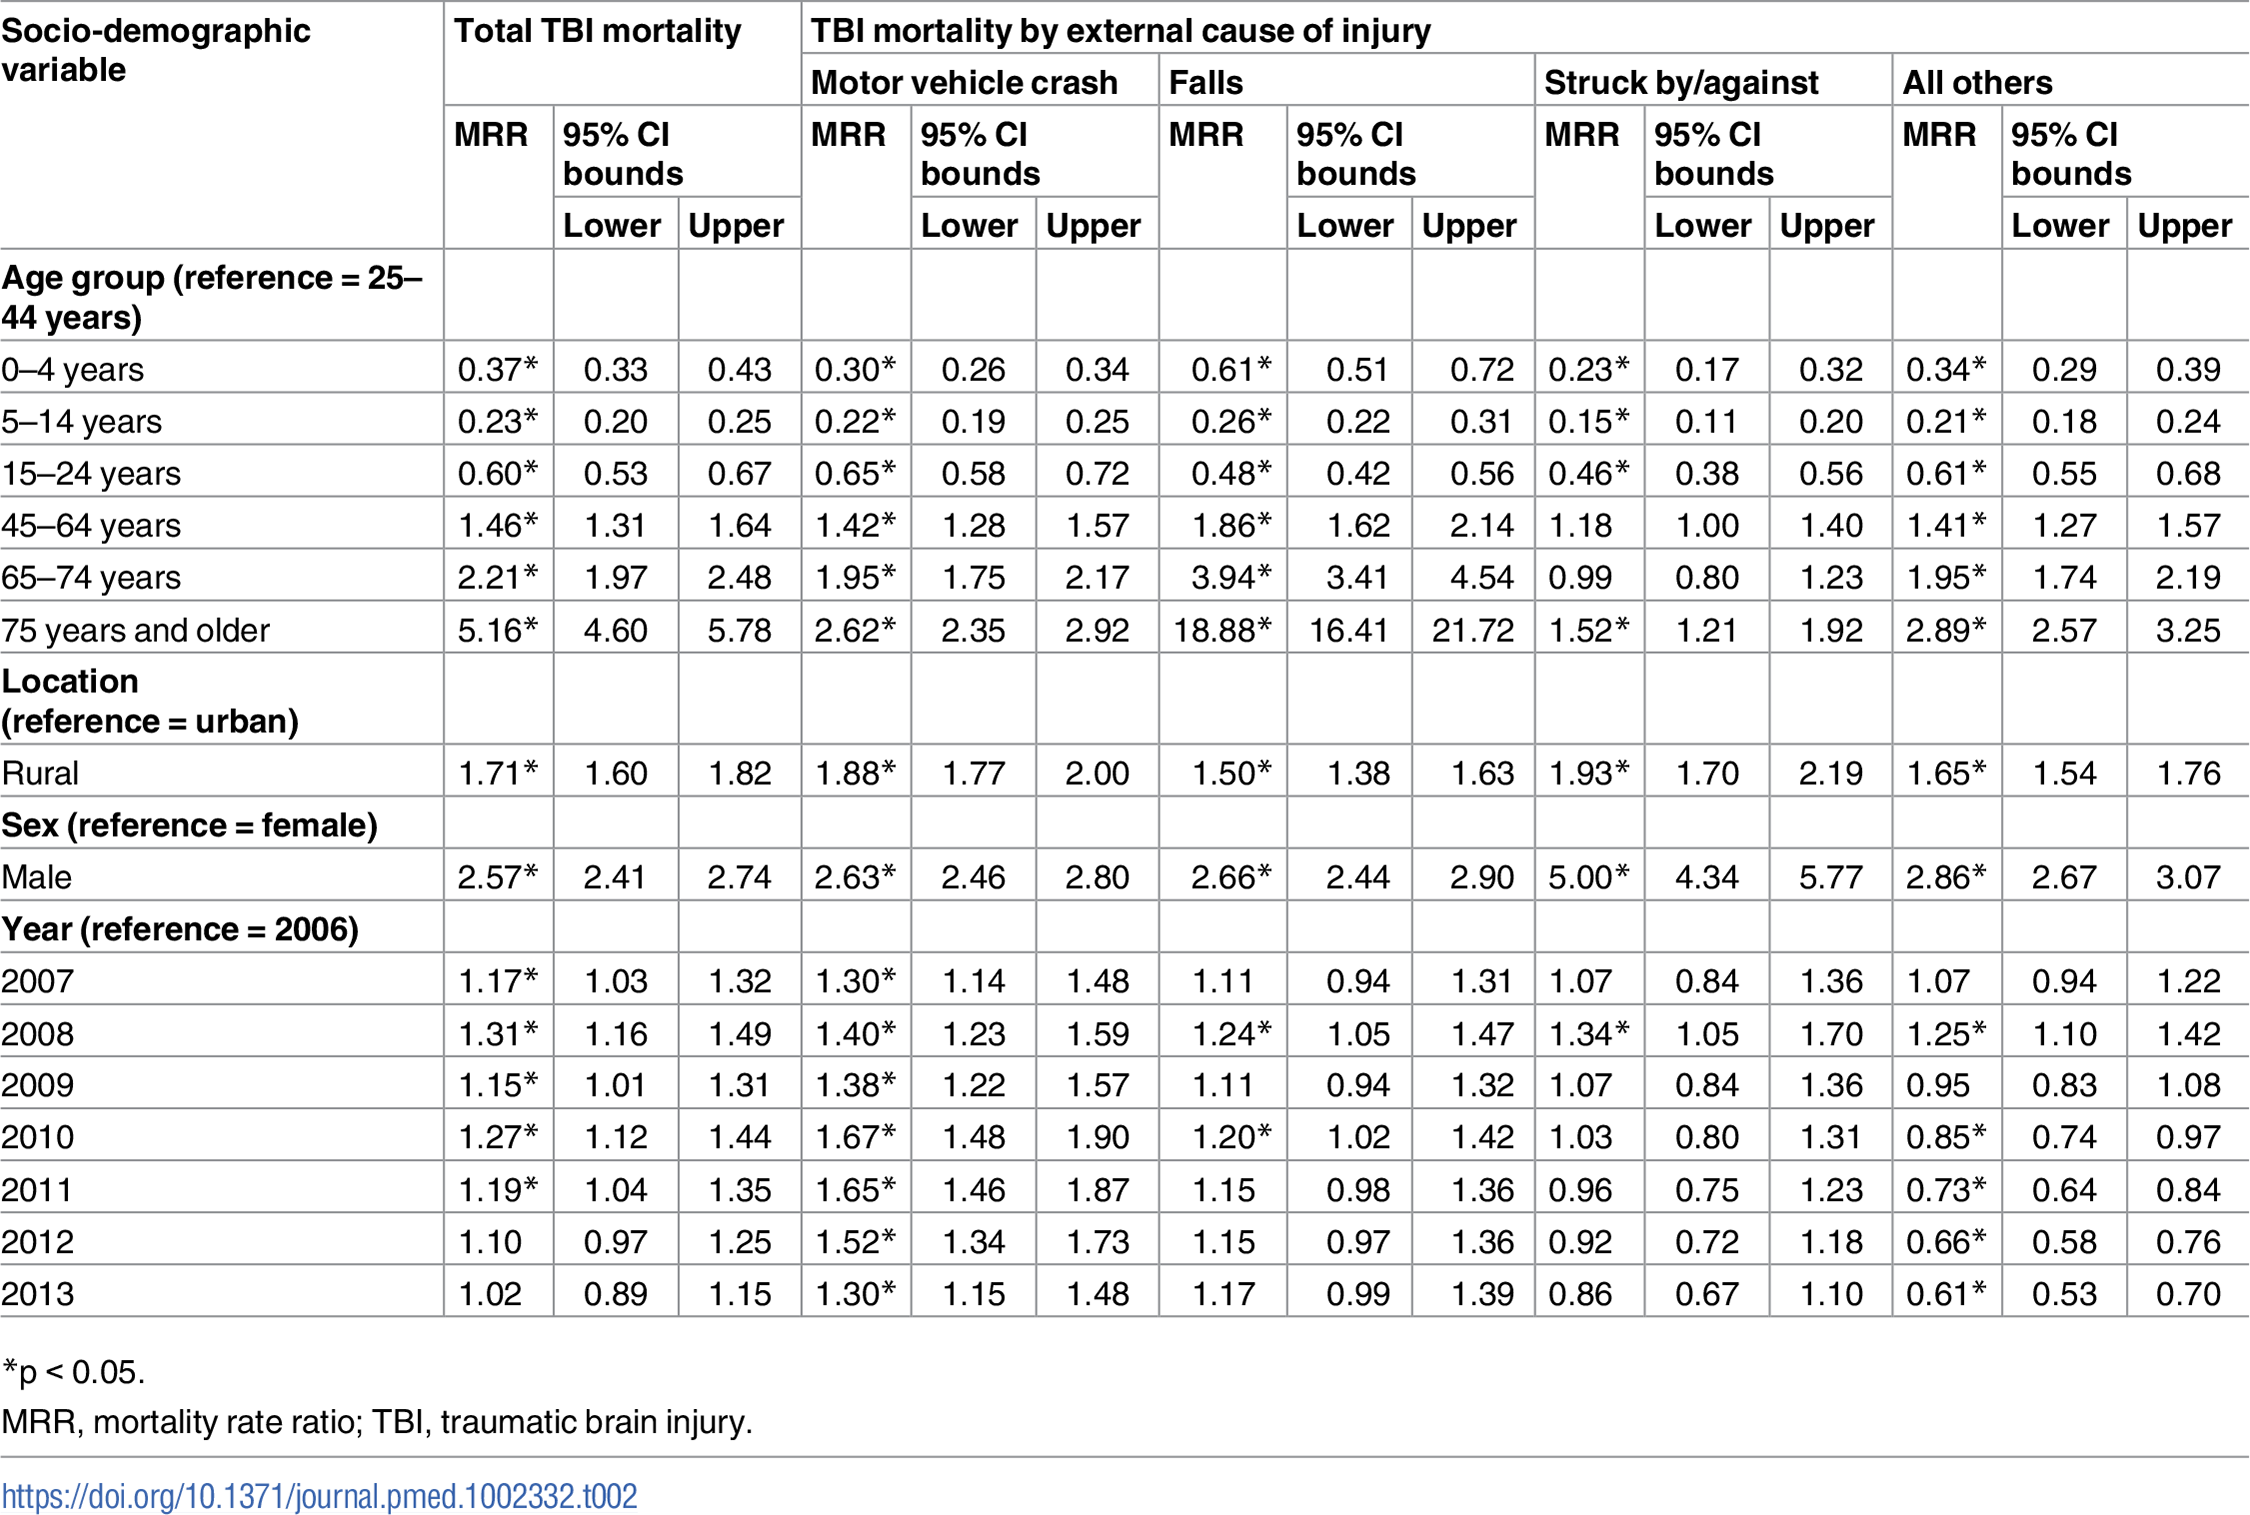 Associations of traumatic brain injury mortality with socio-demographic variables from multivariate negative binomial regression (China, 2006–2013).